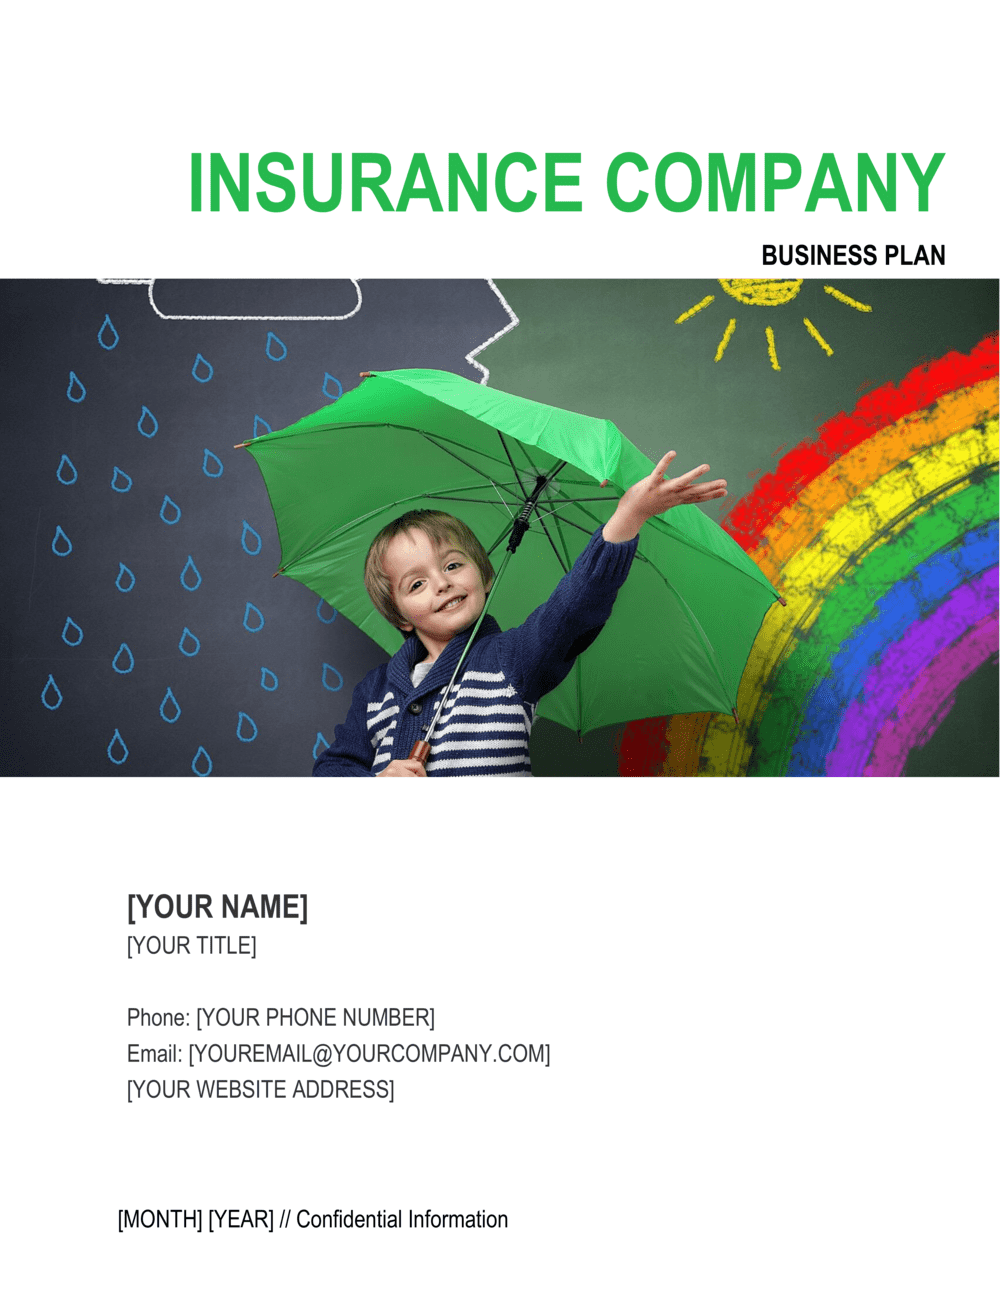 Business-in-a-Box's Insurance Company Business Plan Template